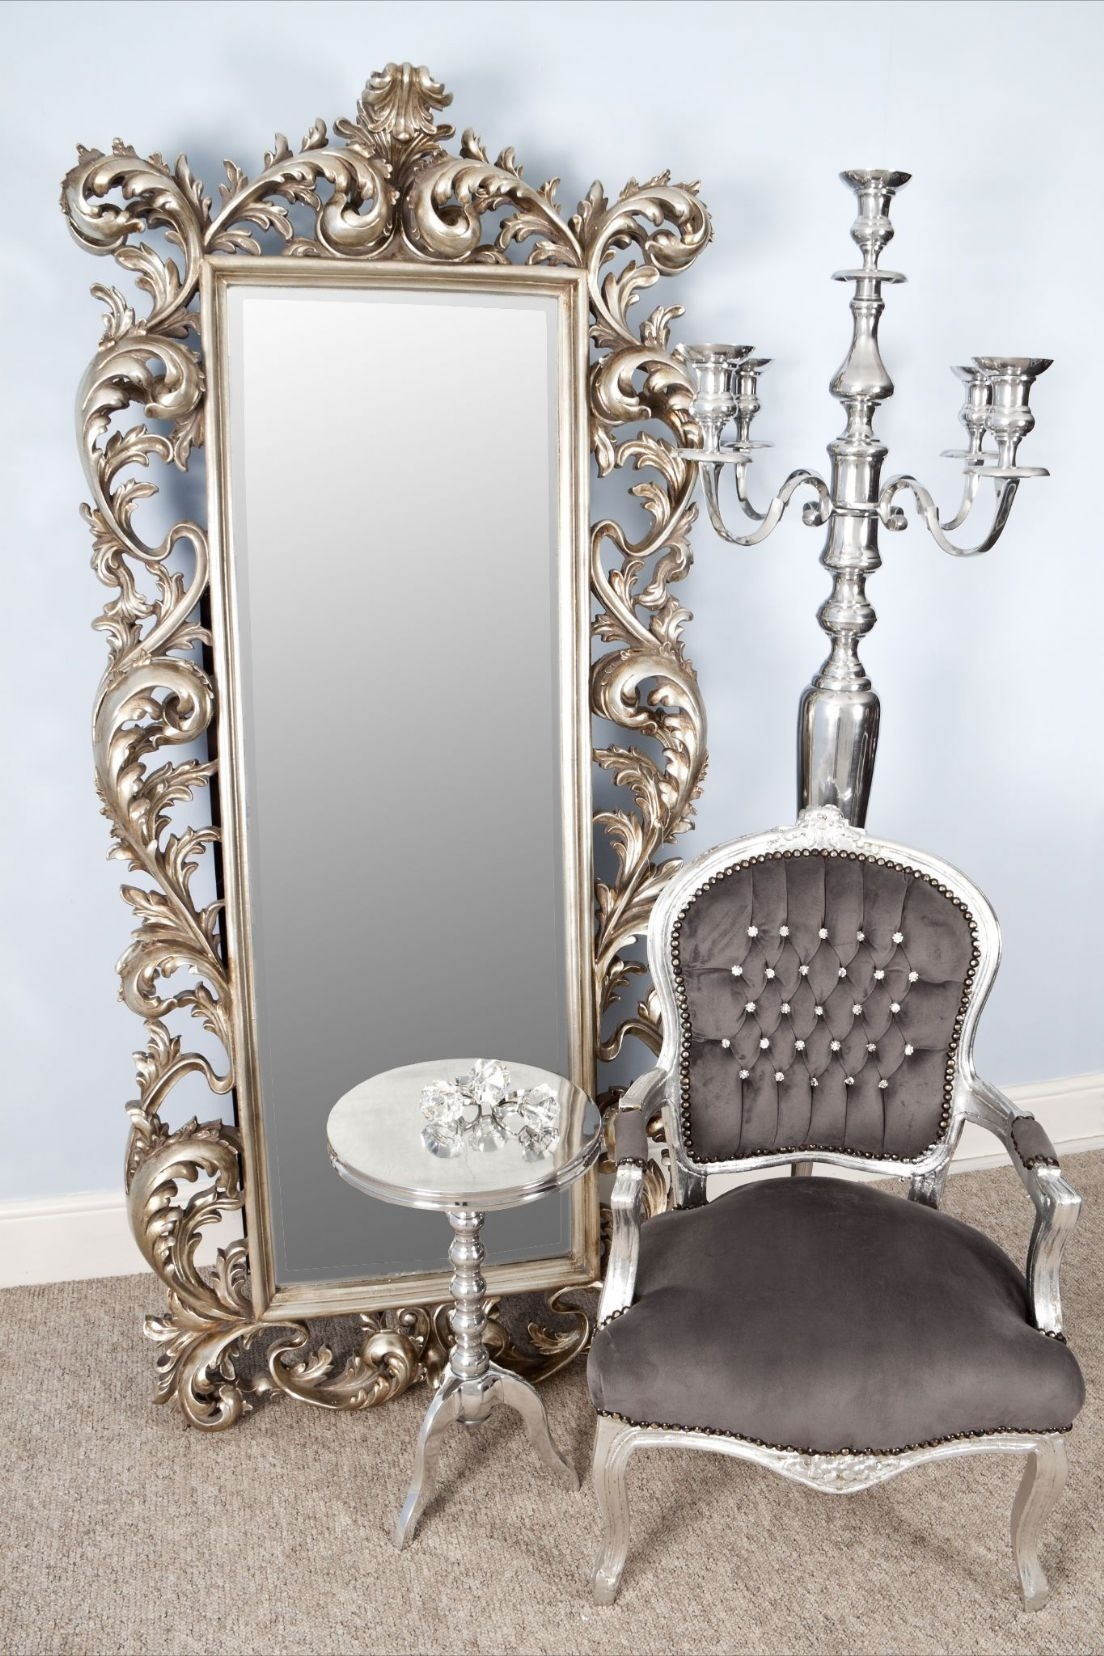 Bedroom Furniture Window Frame Mirror Antique Wall Mirrors Wall In Large Antique Wall Mirrors (Image 4 of 15)